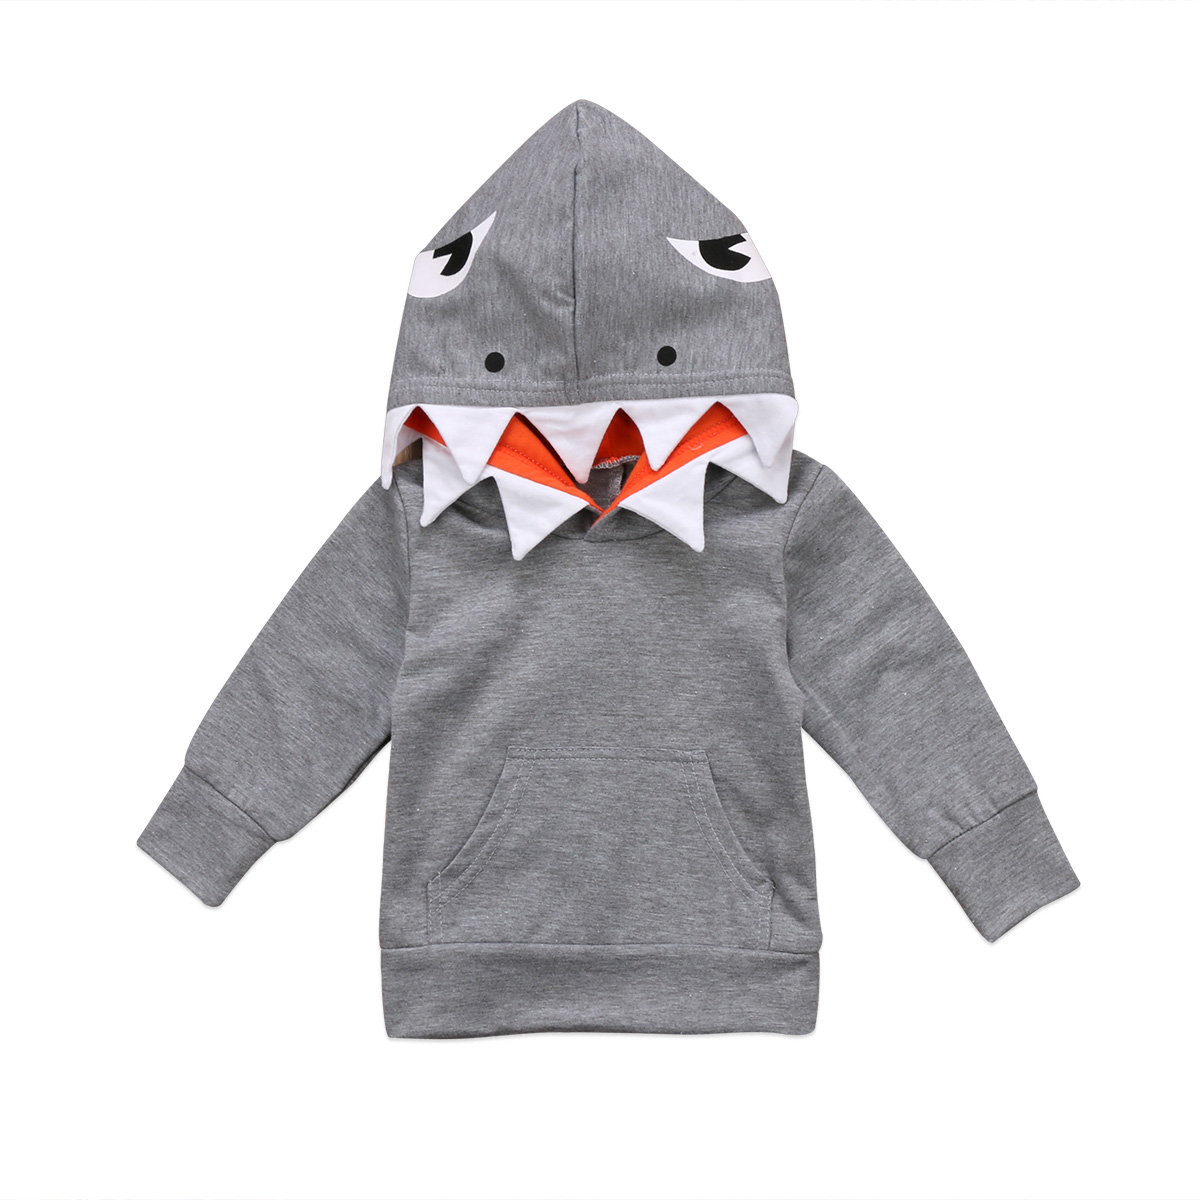 Unisex Toddler Kids Baby Boys Girls Shark Hooded Tops Hoodie Pocket Jacket Coat Outerwear Casual NEW(China)